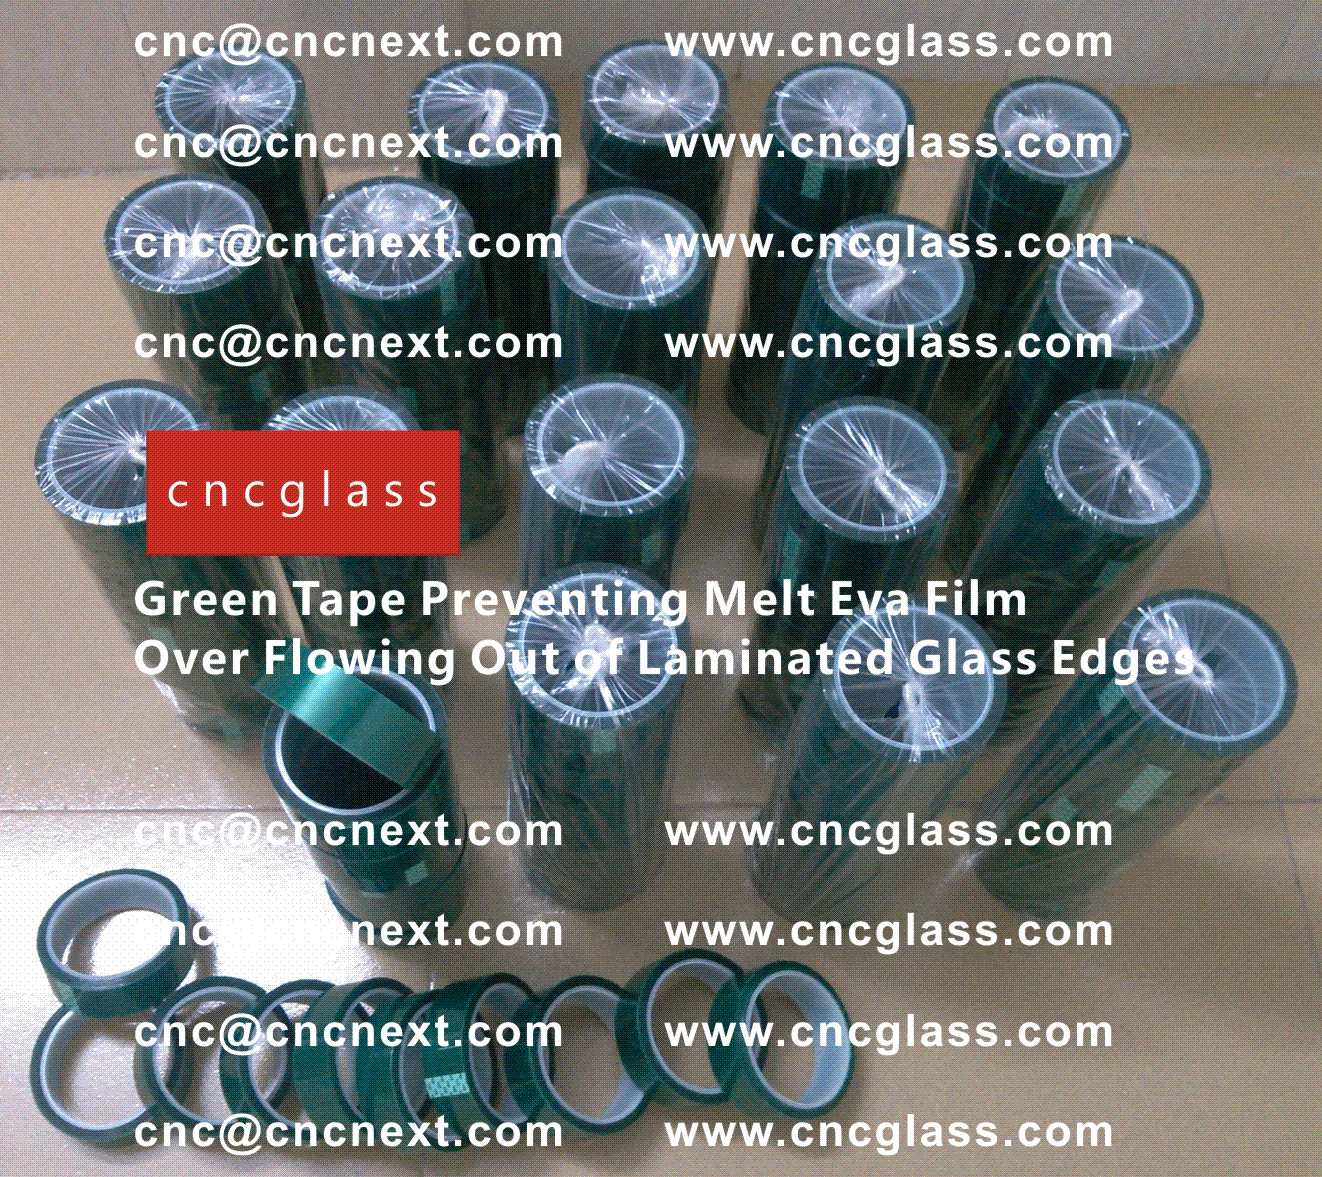 006 Green Tape Preventing Melt Eva Film Over Flowing Out of Laminated Glass Edges